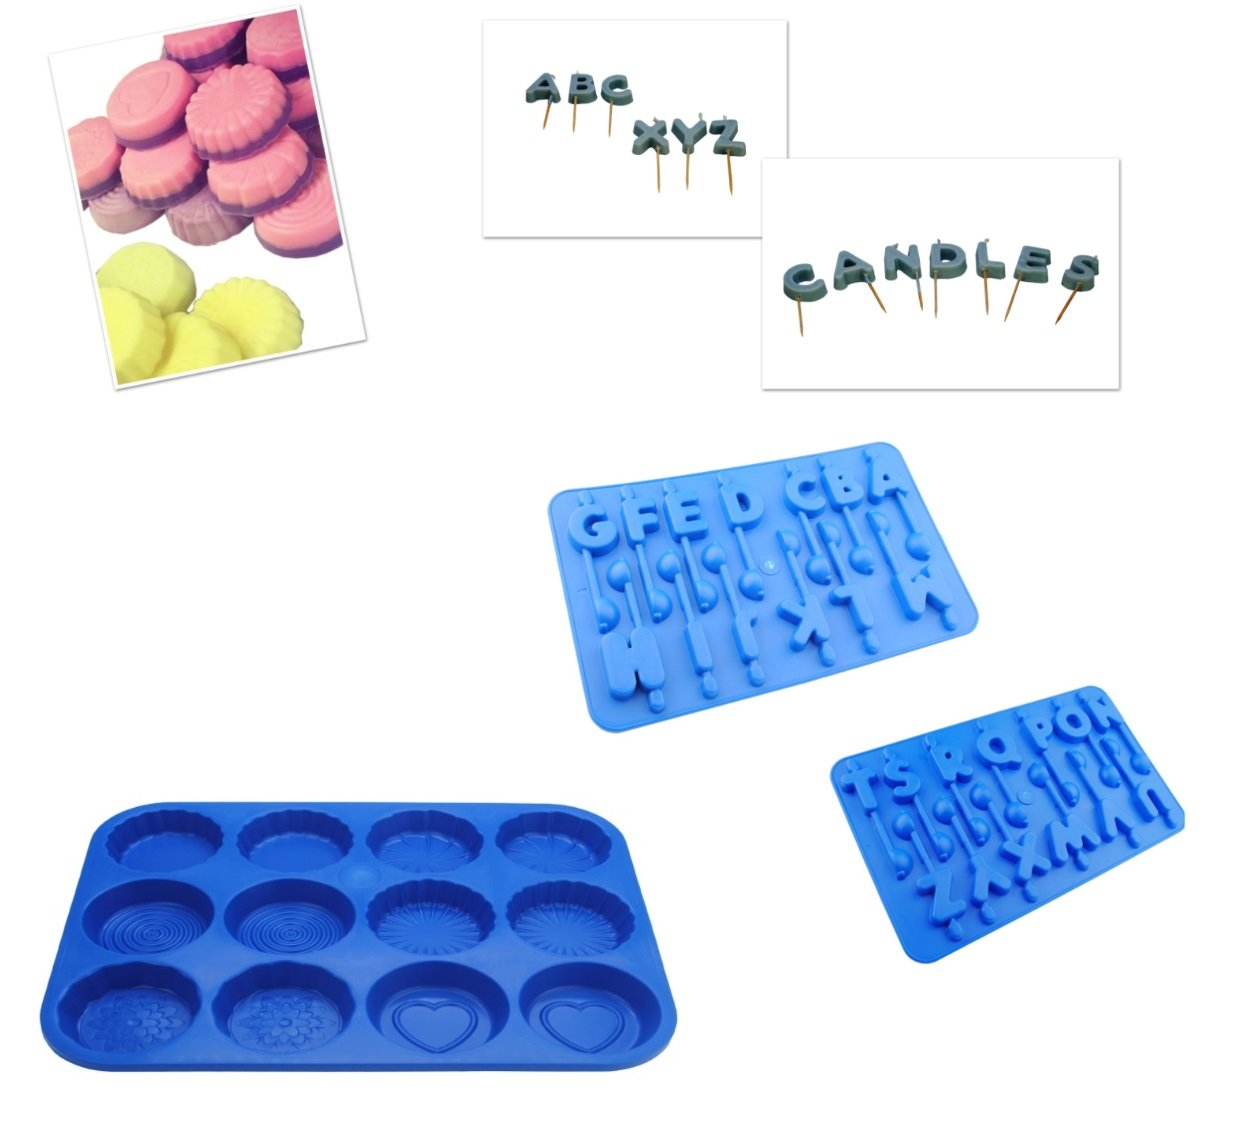 Set x 3 A-Z Alphabet Birthday Letters Trays /& Number 0-9 Tray Candle Mould S7580